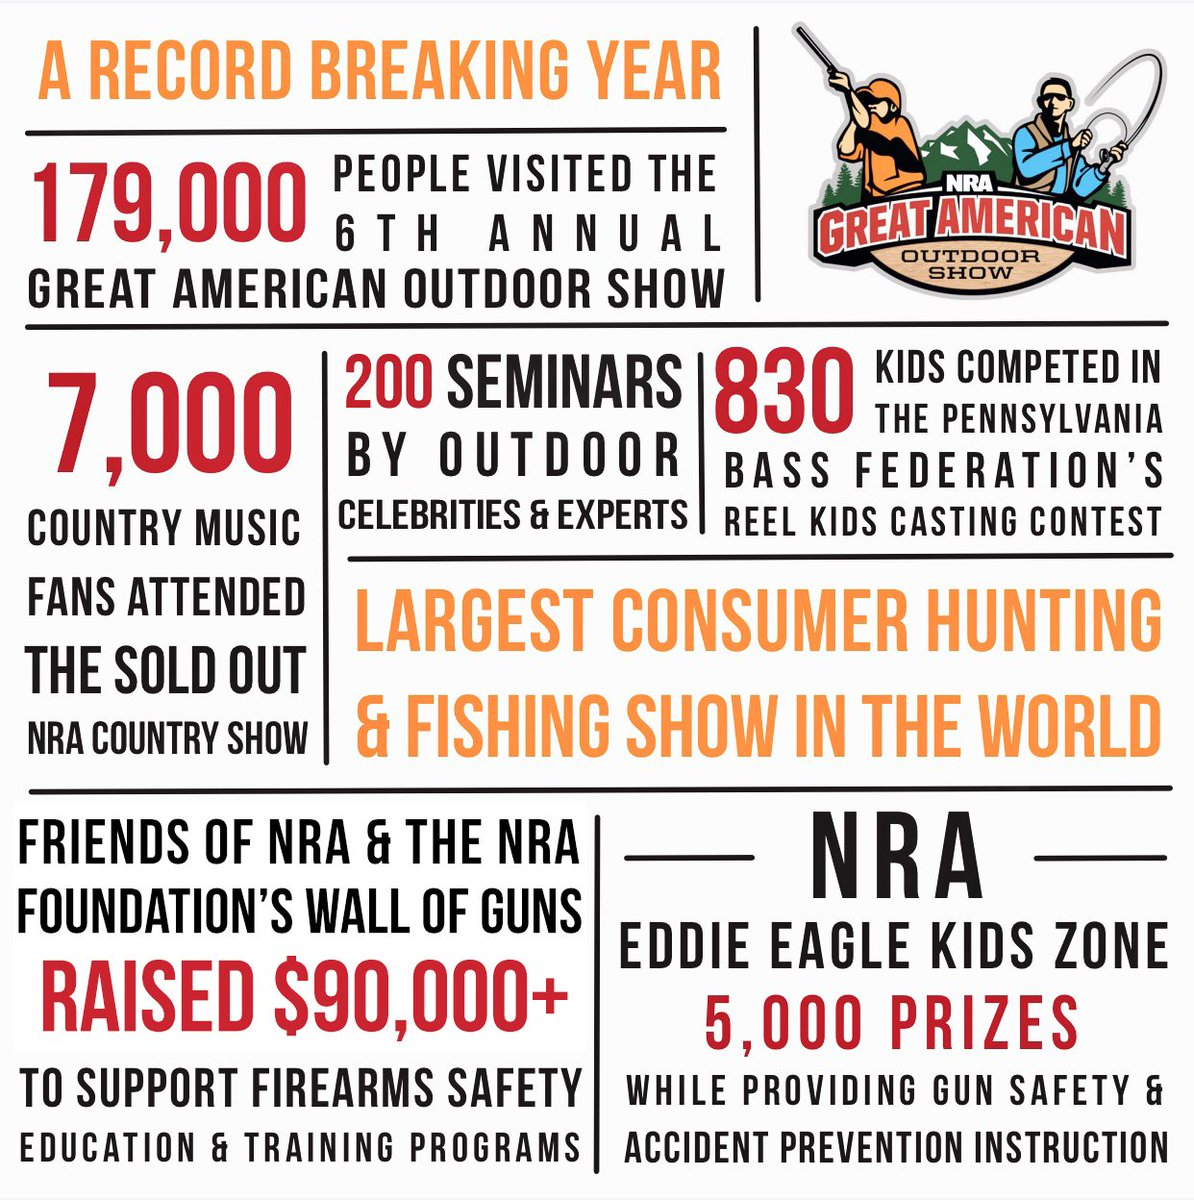 #GAOS2019 was another big success! We welcomed a record 179,000 #outdoors enthusiasts to the world's largest consumer outdoor sports show this year! See how the rest of the numbers stacked up at the #NRA's sixth annual Great American Outdoor Show: http://bit.ly/GAOS2019Record